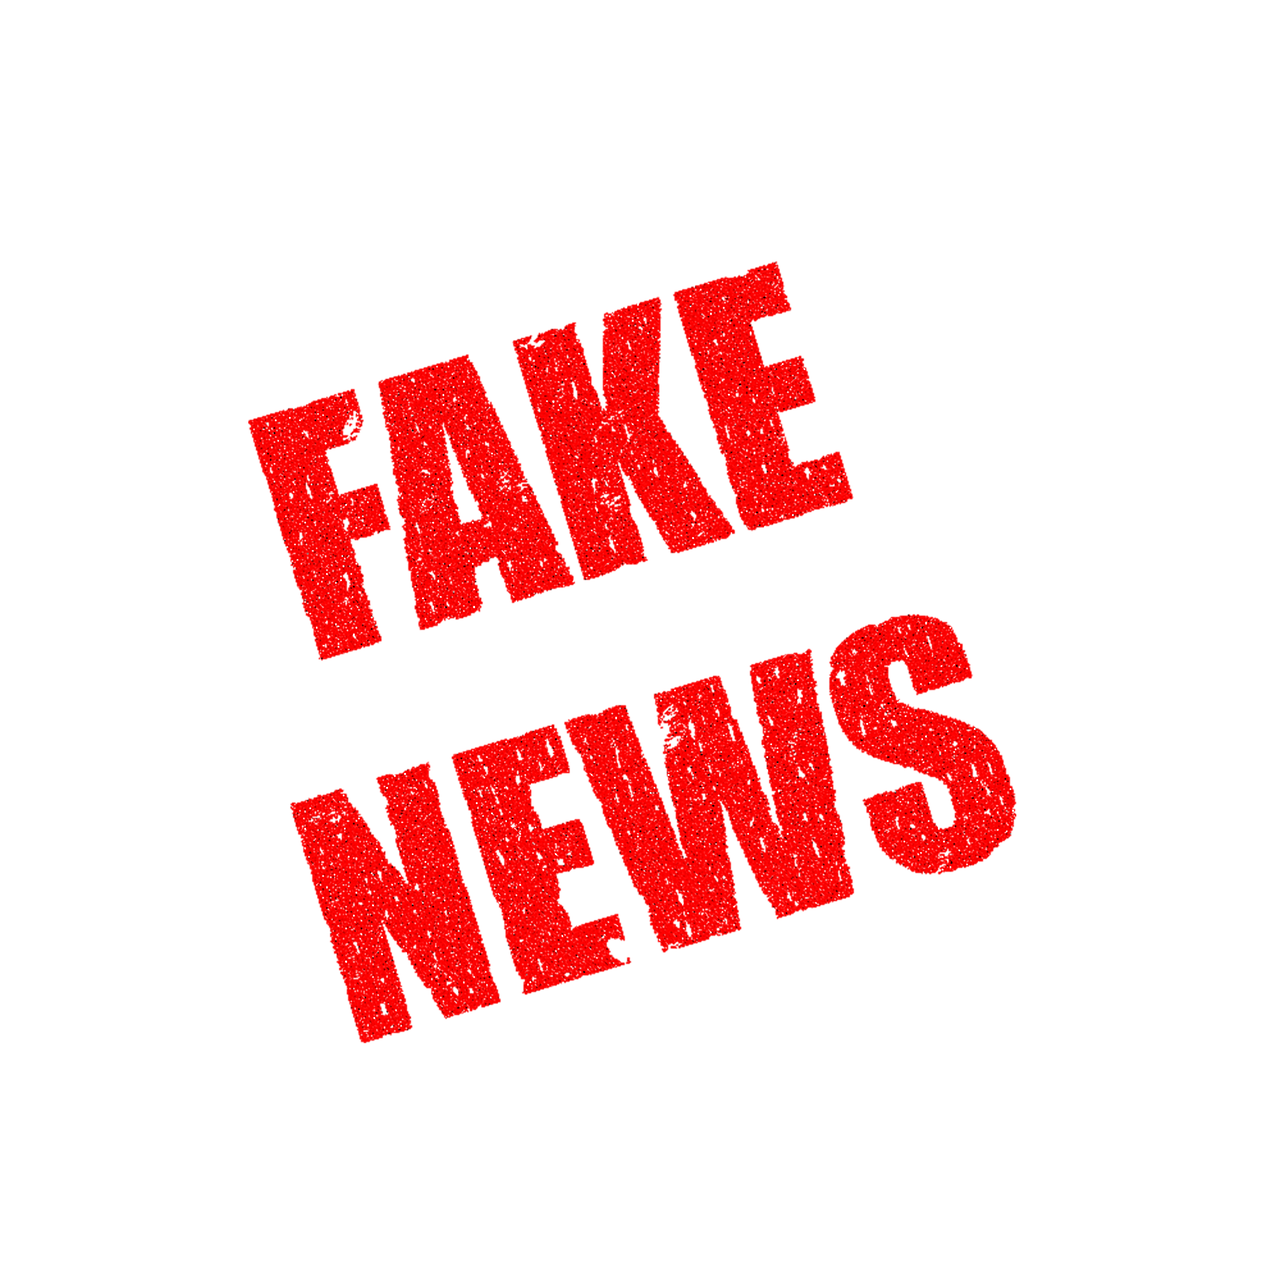 There is bias in all sort of media. Graphic courtesy of Shutterstock.